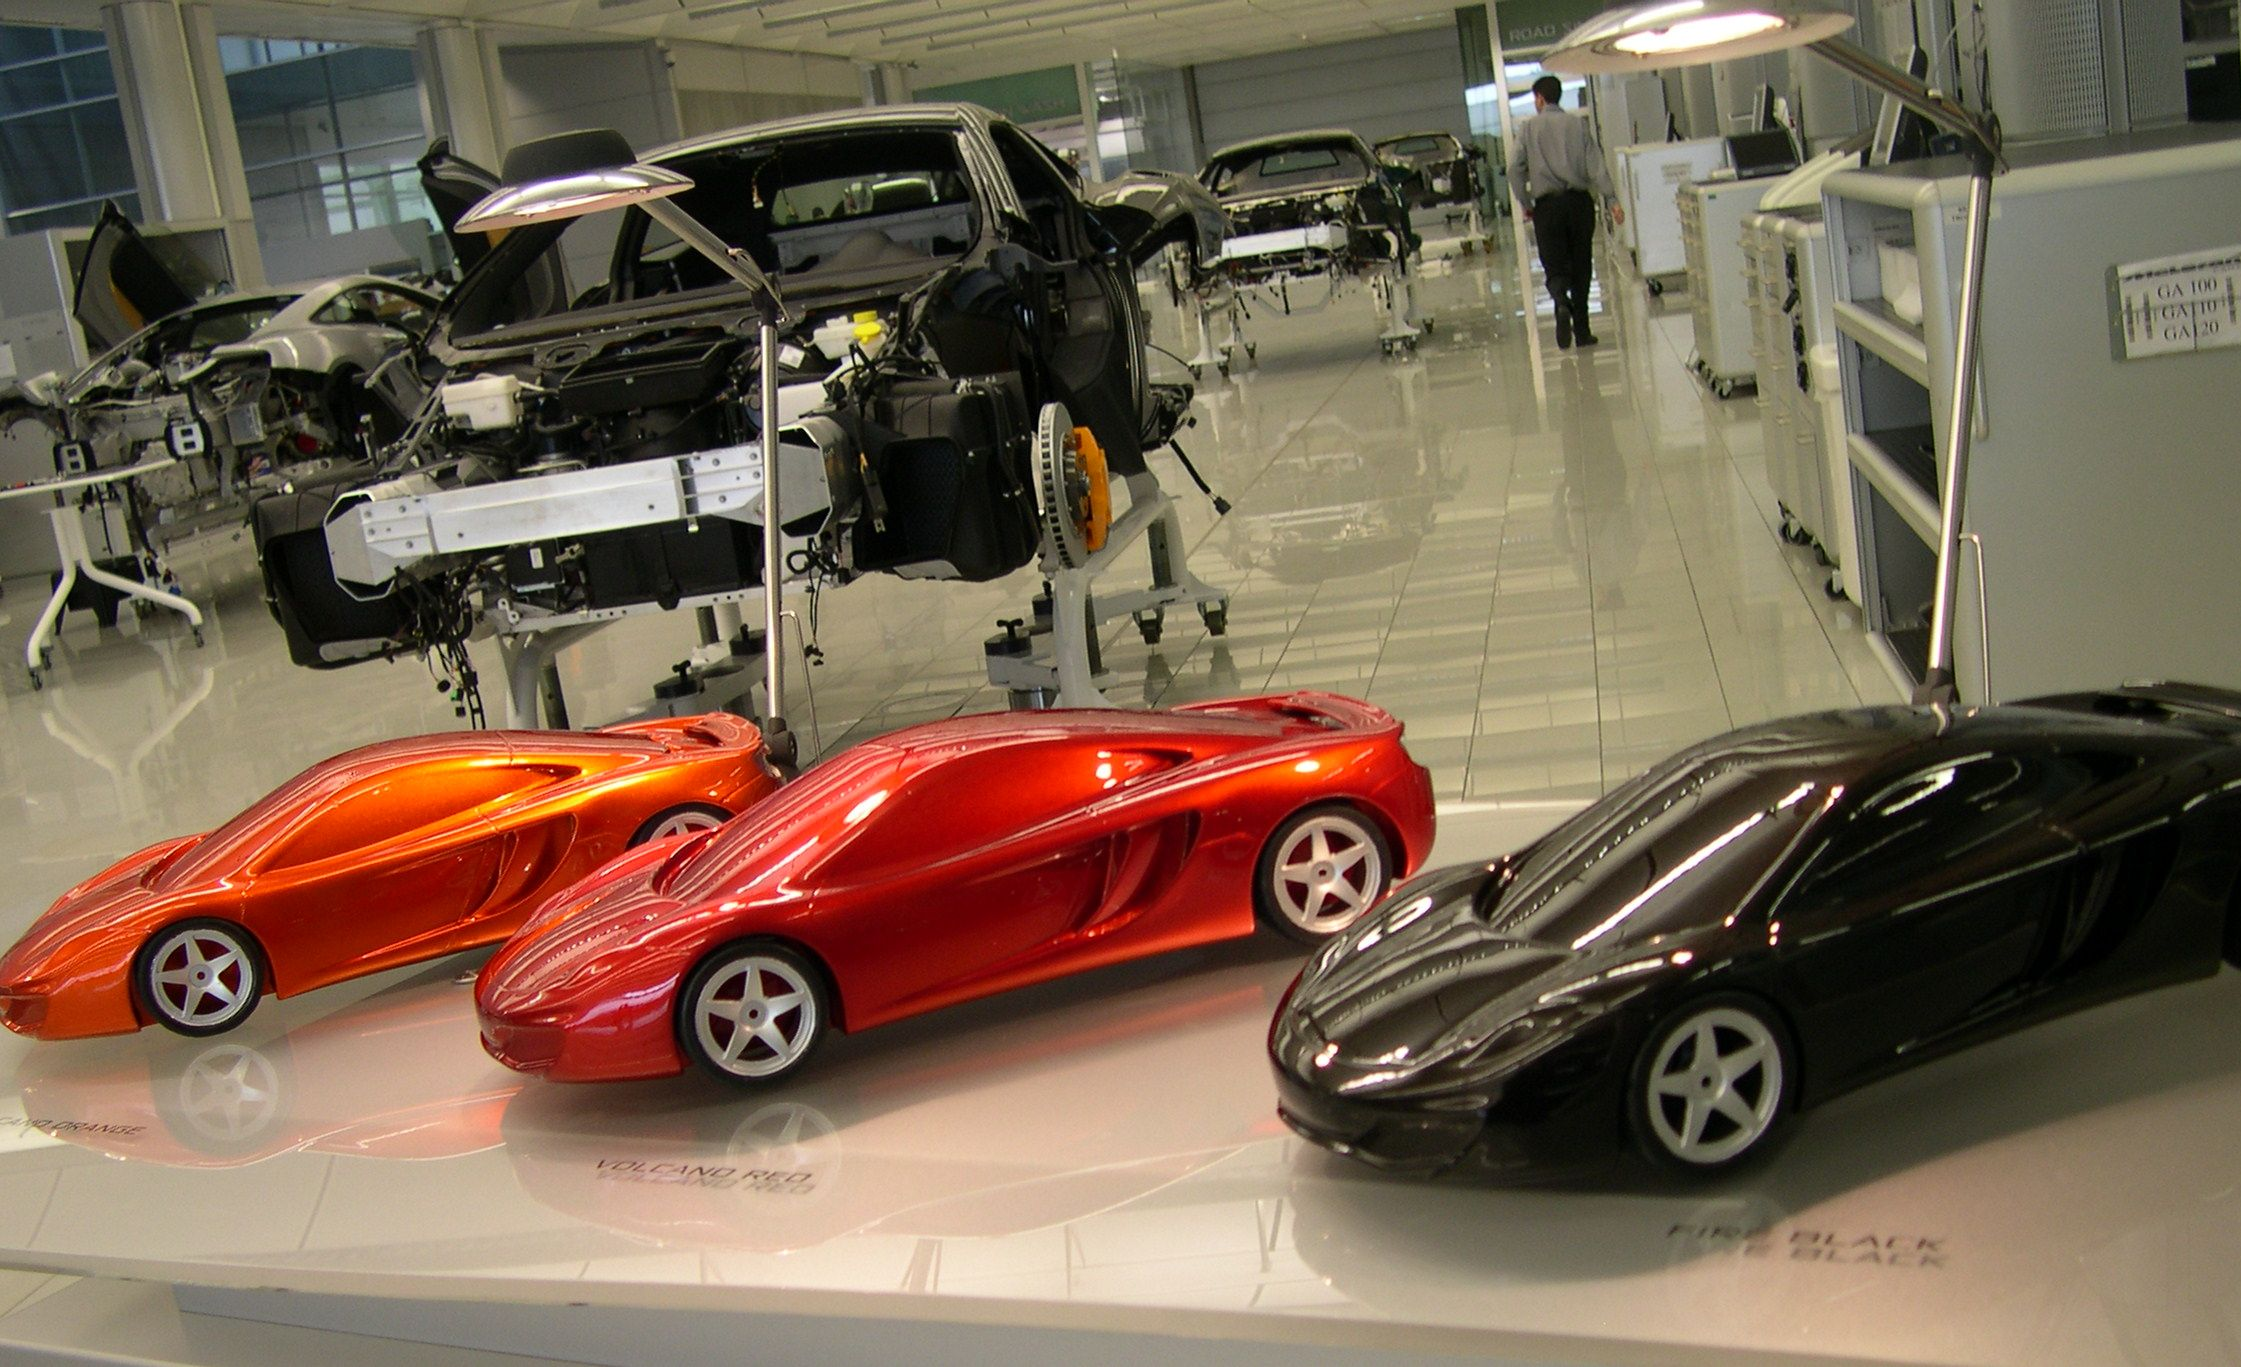 VVV visit Mclaren for the launch of the MP4-12C